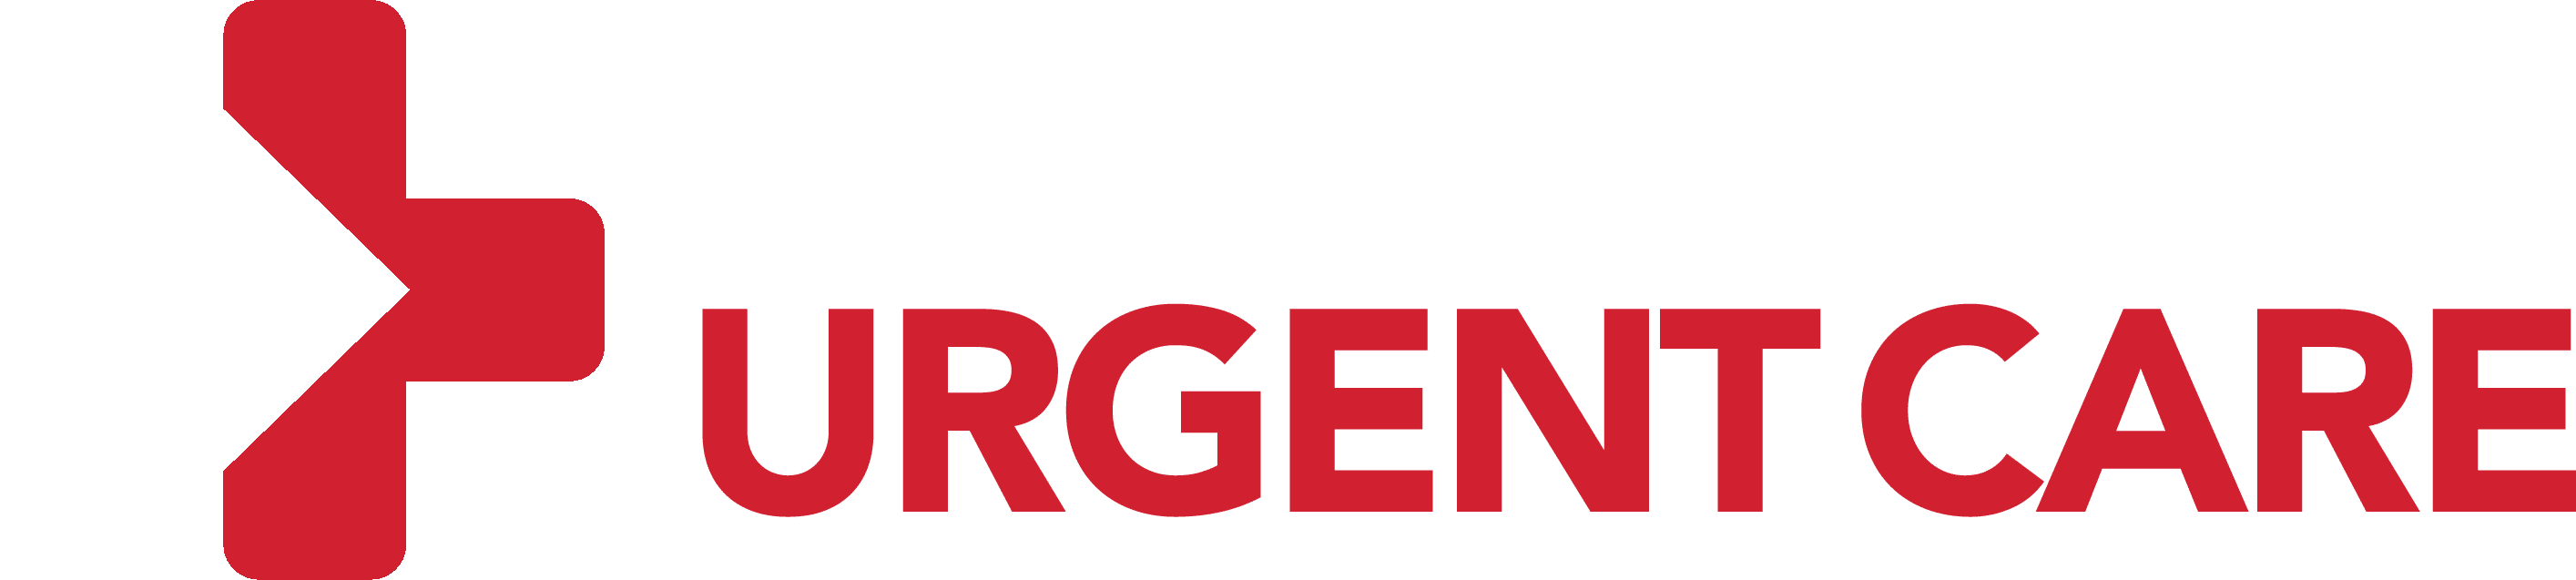 Family Express Urgent Care Logo copy